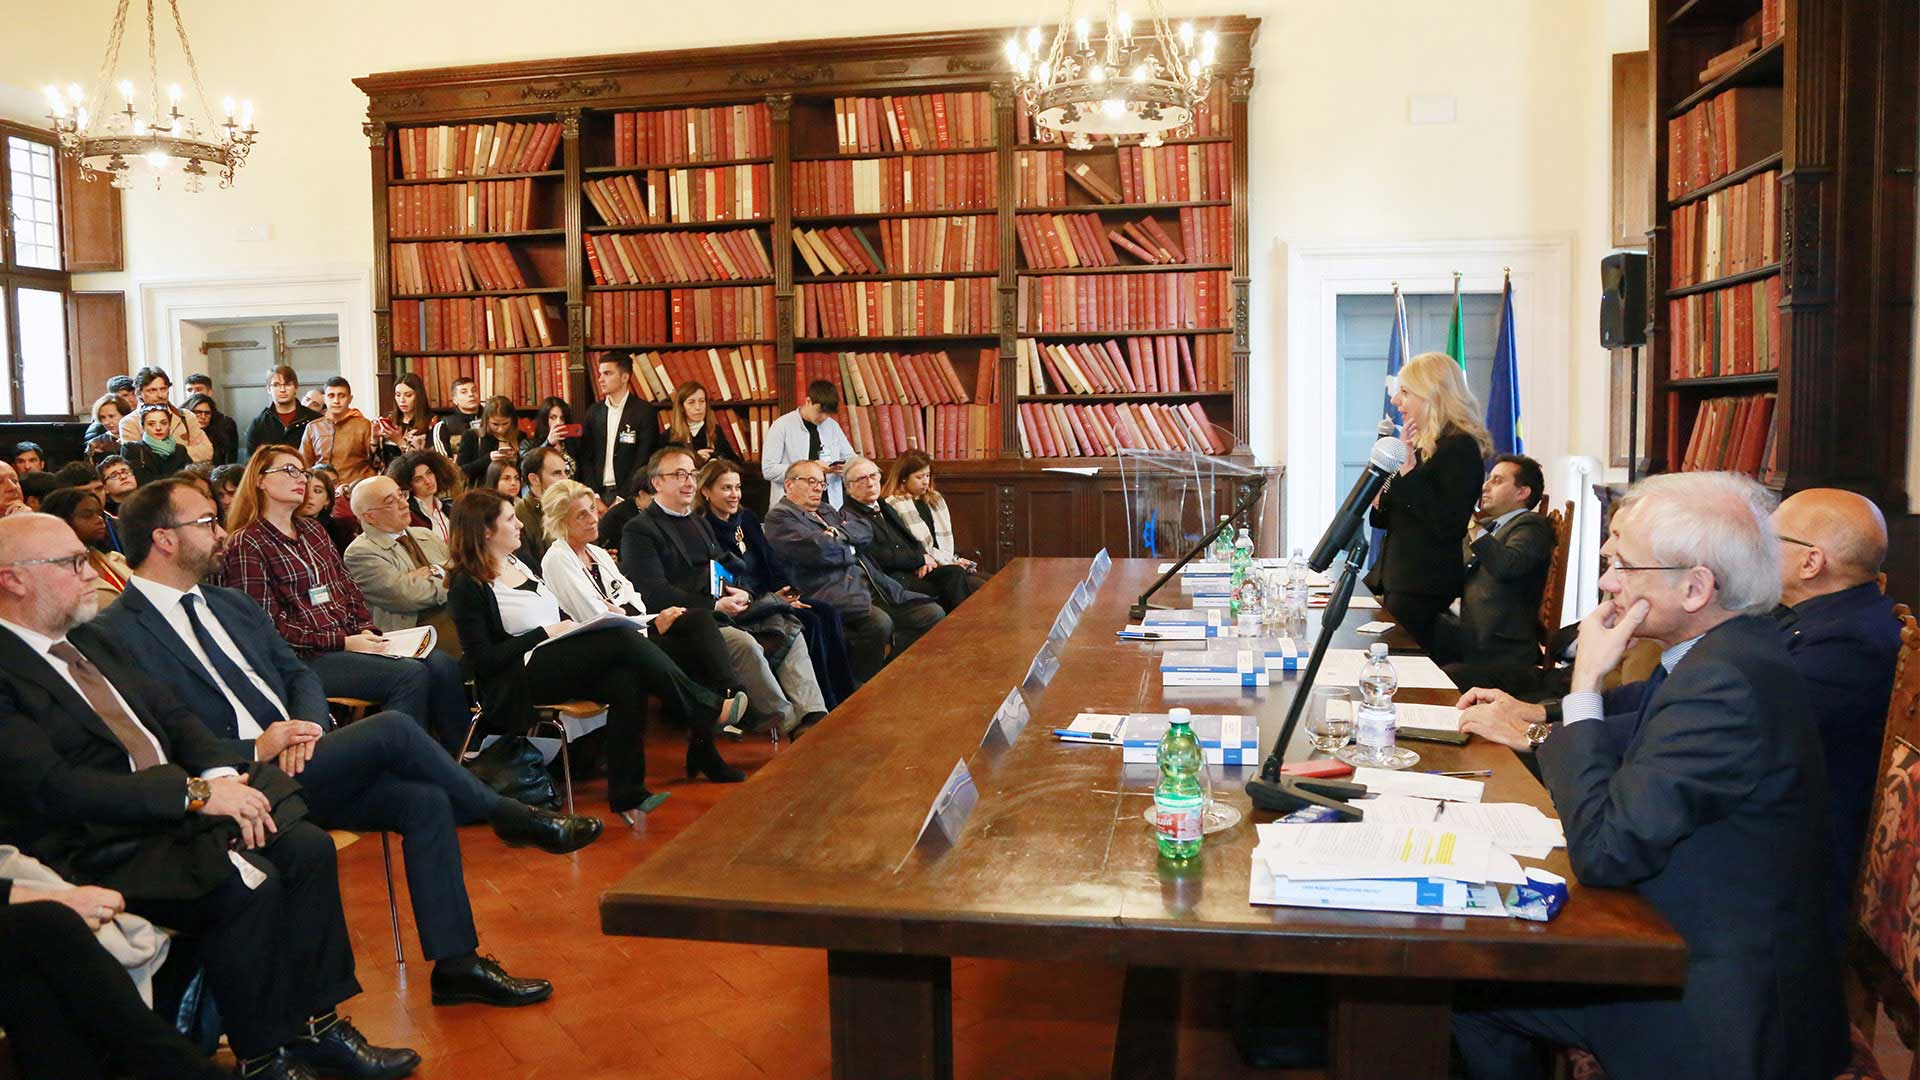 4conferenza-stampa-proteobrains2019---Copia